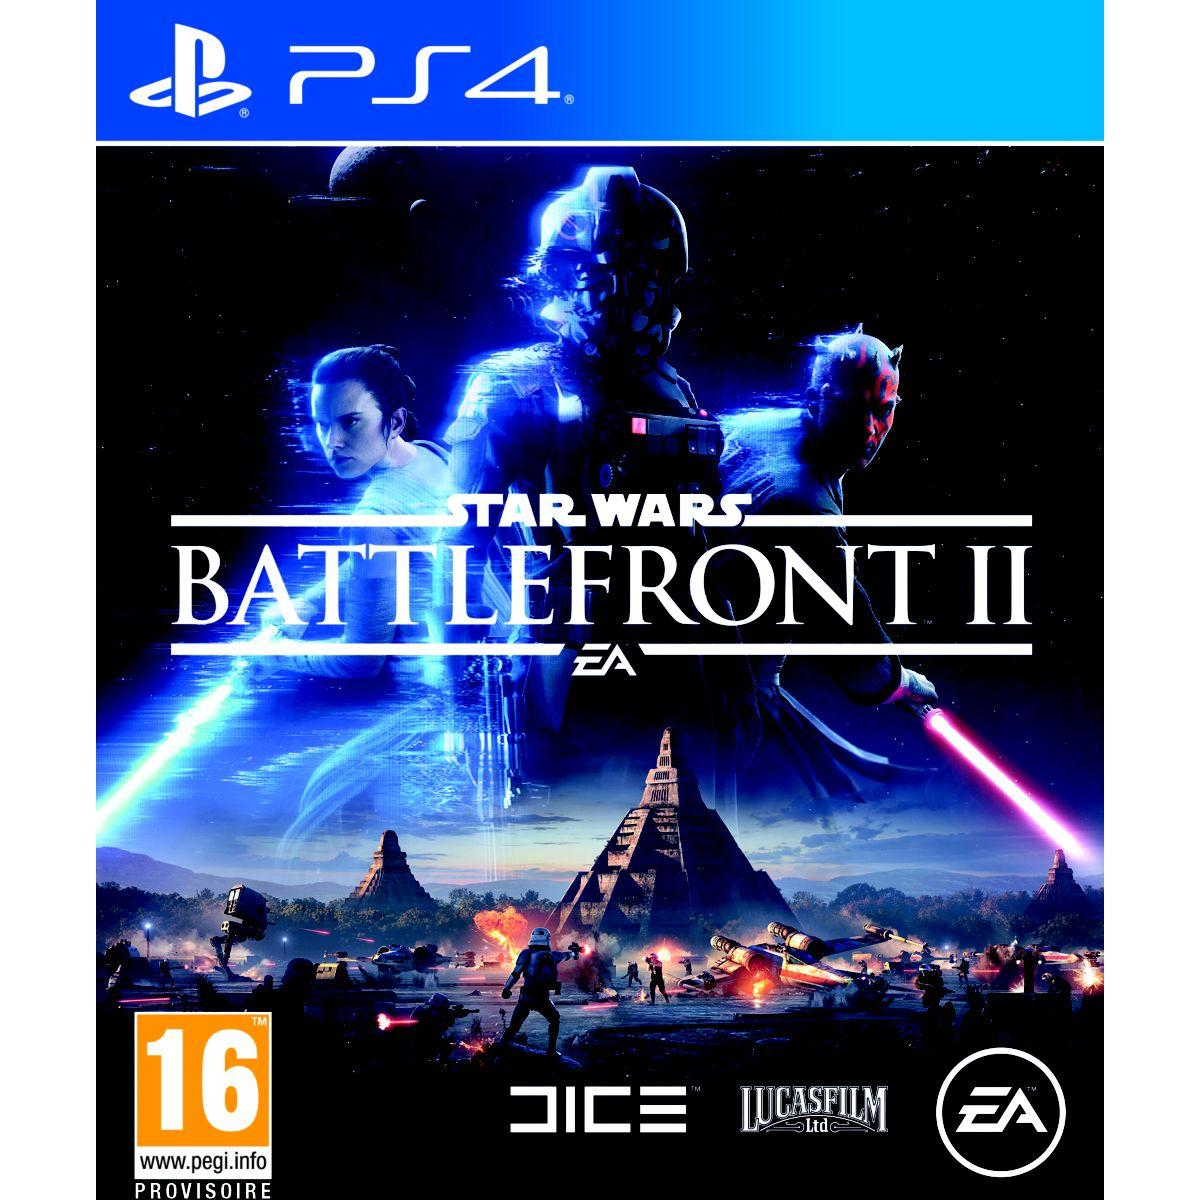 Jeu ps4 electronic arts star wars battlefront ii (photo)